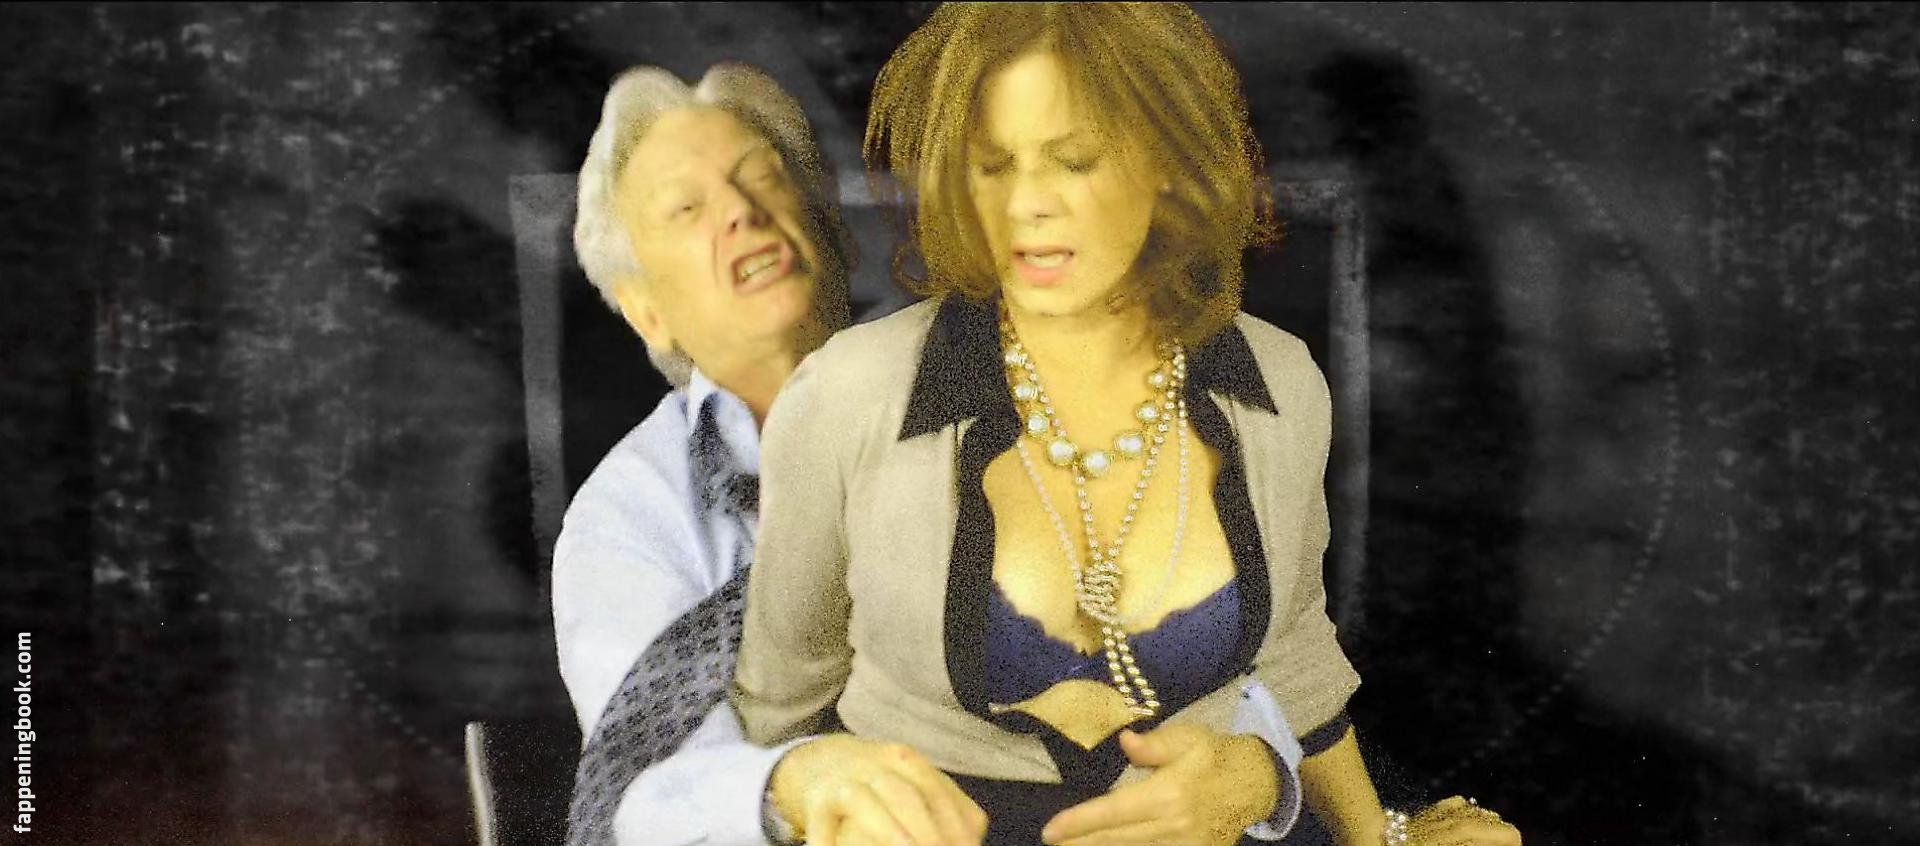 marcia gay harden sex scéna hhot sex video